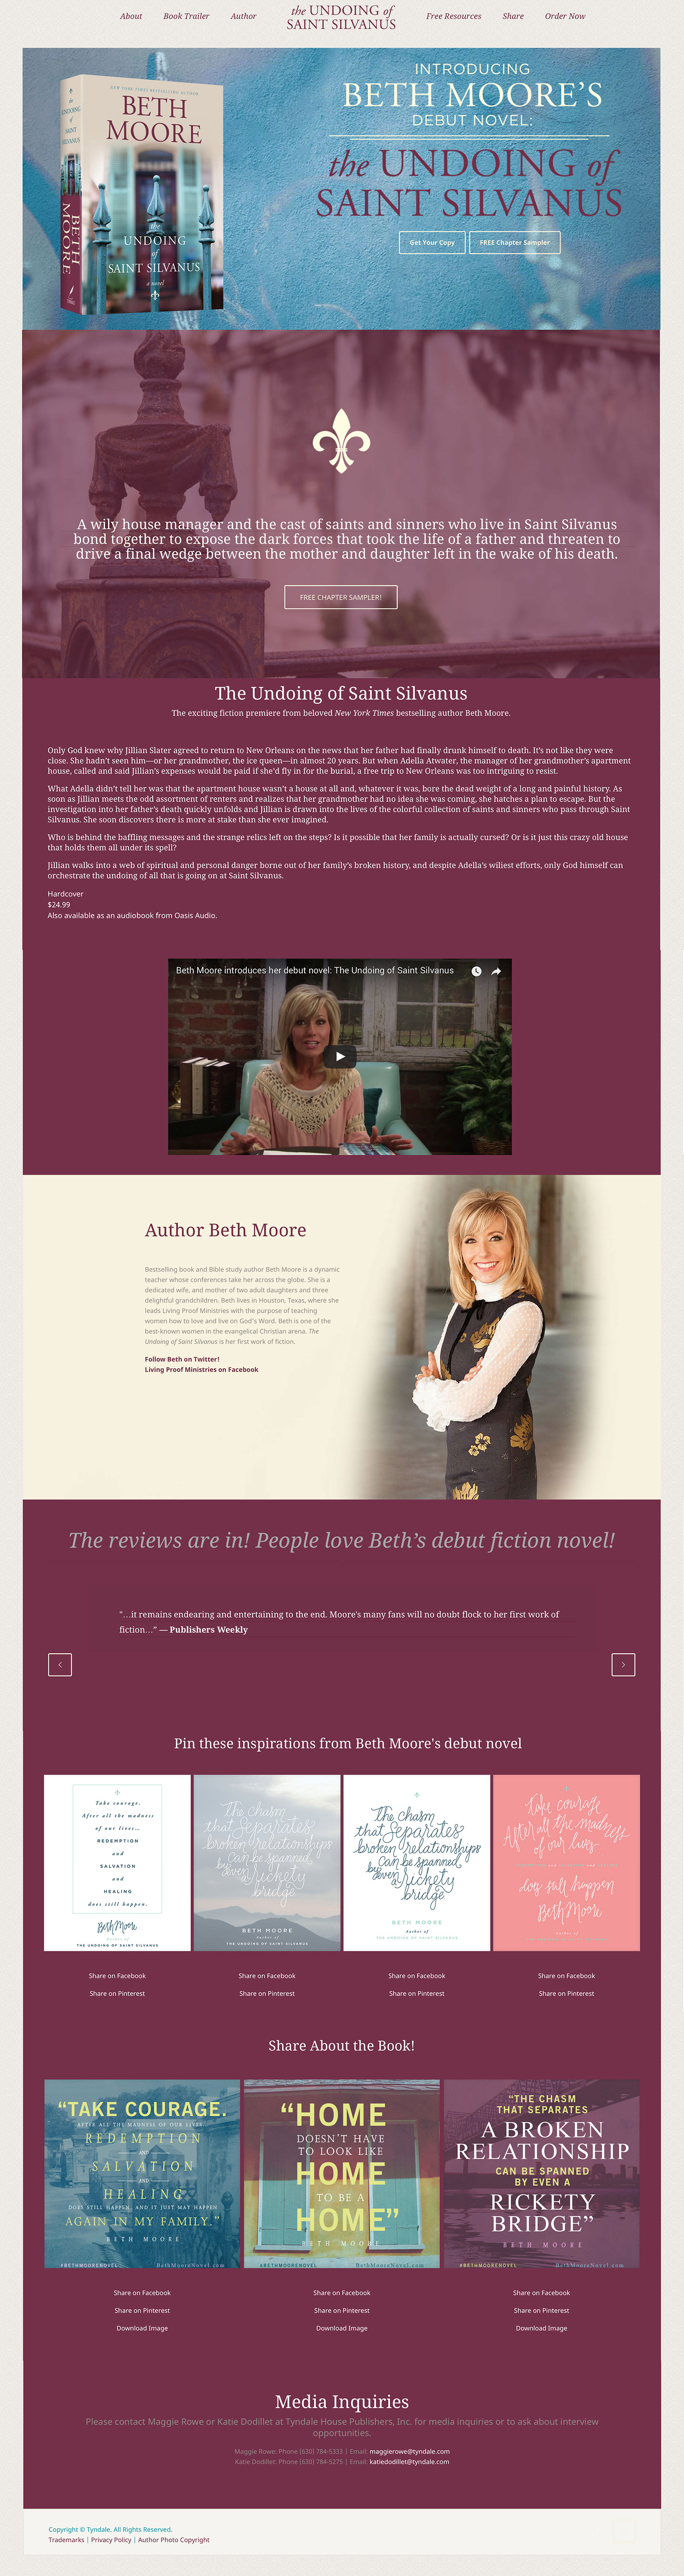 Beth Moore Book Website Design